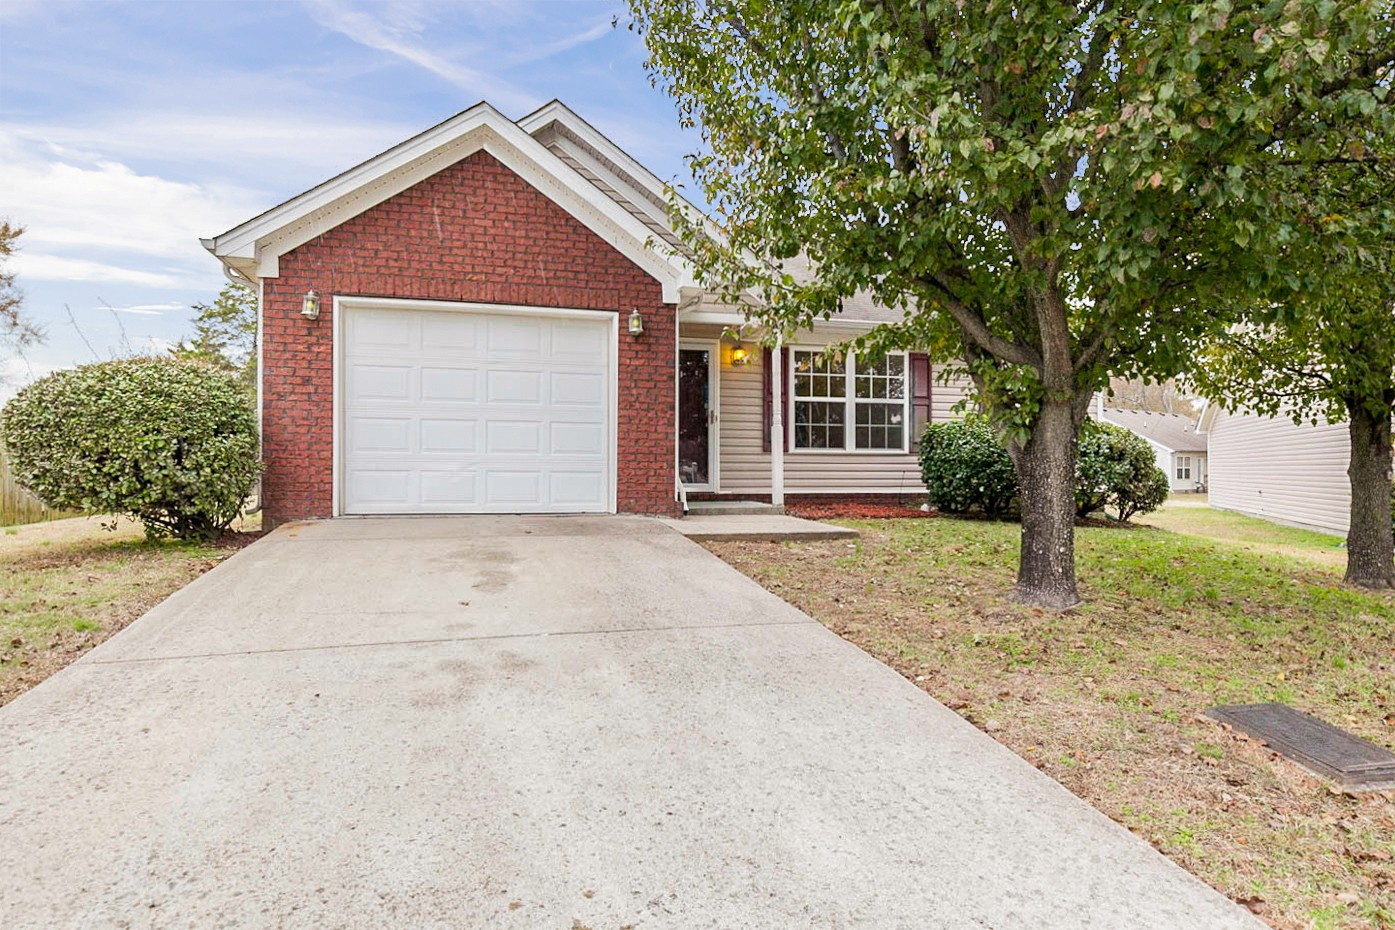 1217 Hartfield Ct, Nashville-Antioch in Davidson County County, TN 37013 Home for Sale